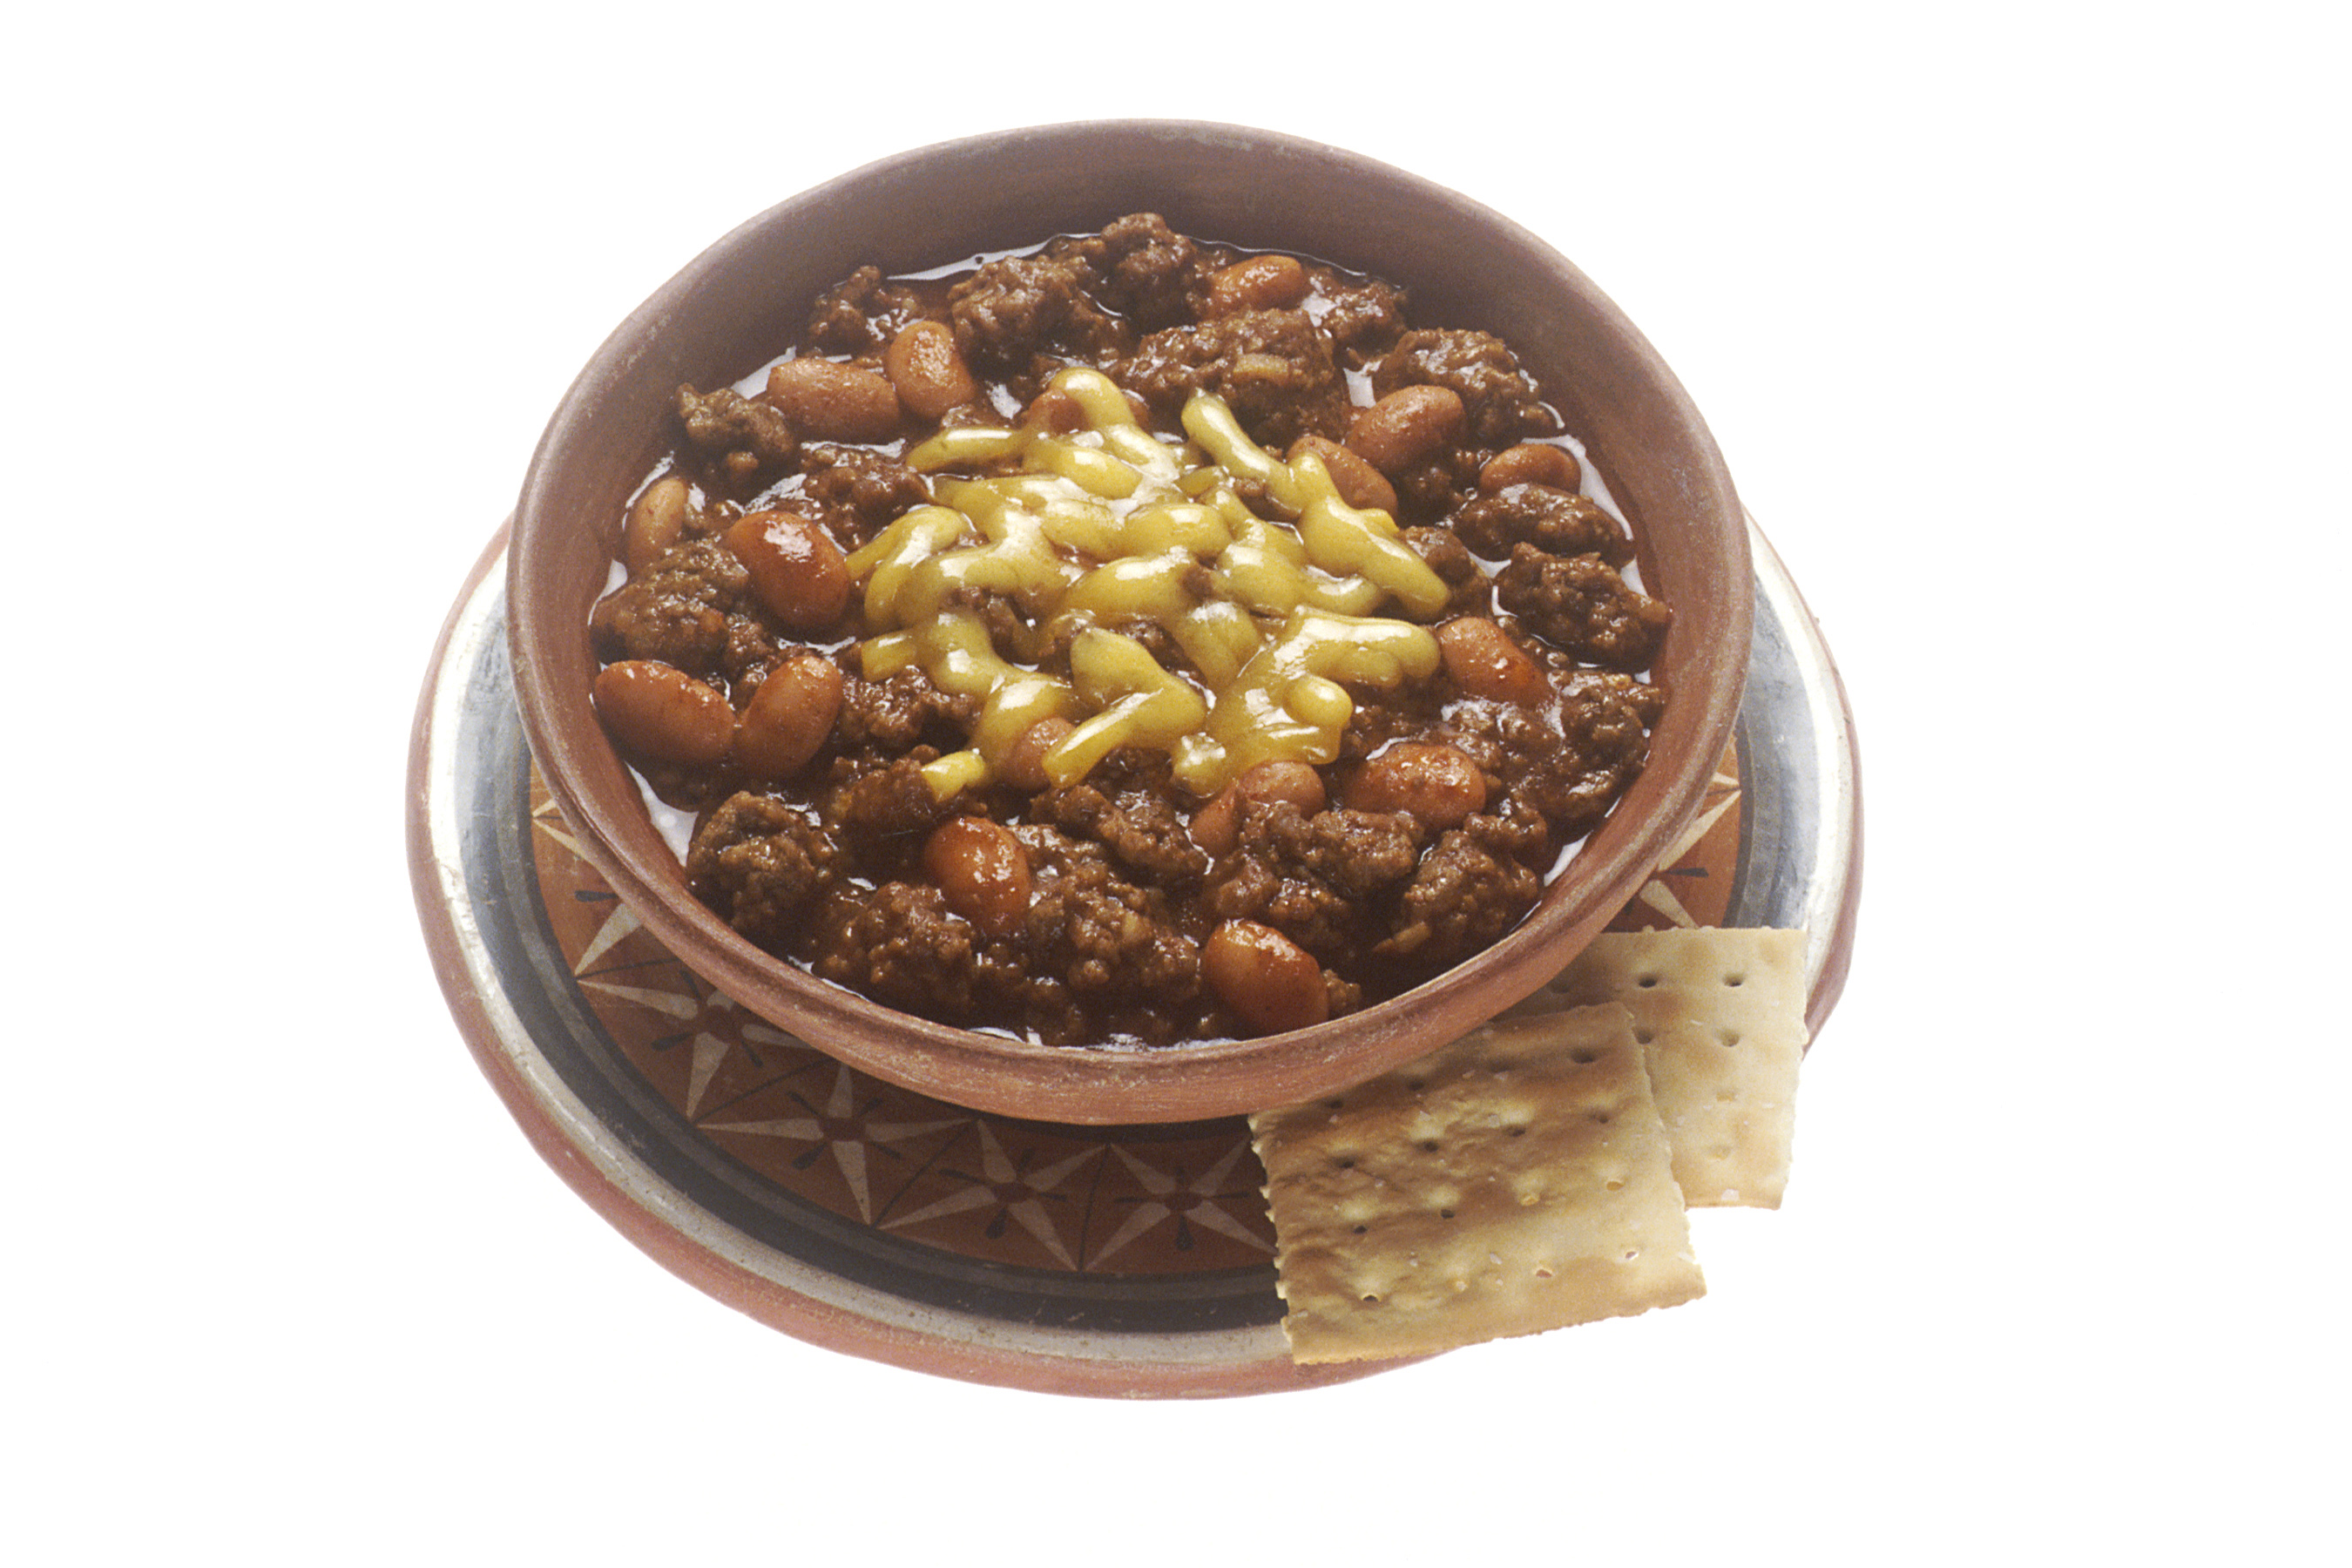 File:Bowl of chili (1).jpg - Wikimedia Commons